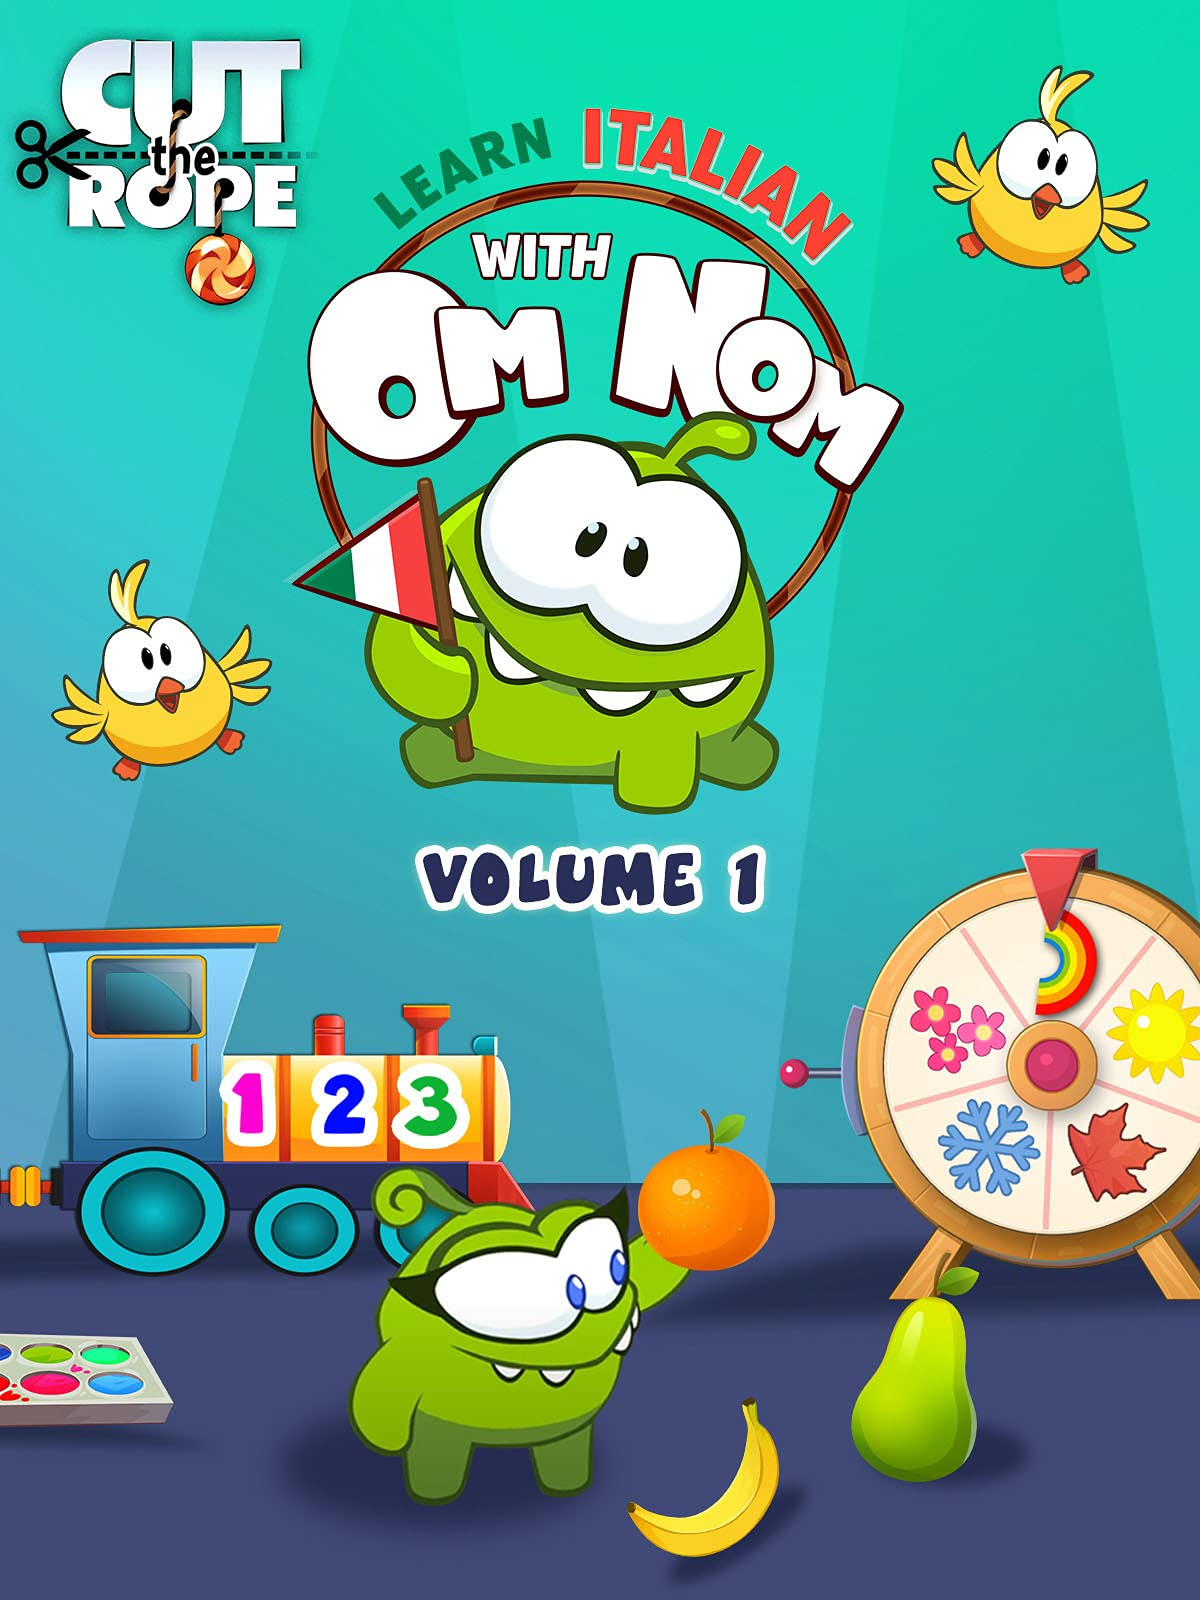 Cut the Rope: Learn Italian with Om Nom (Volume 1)